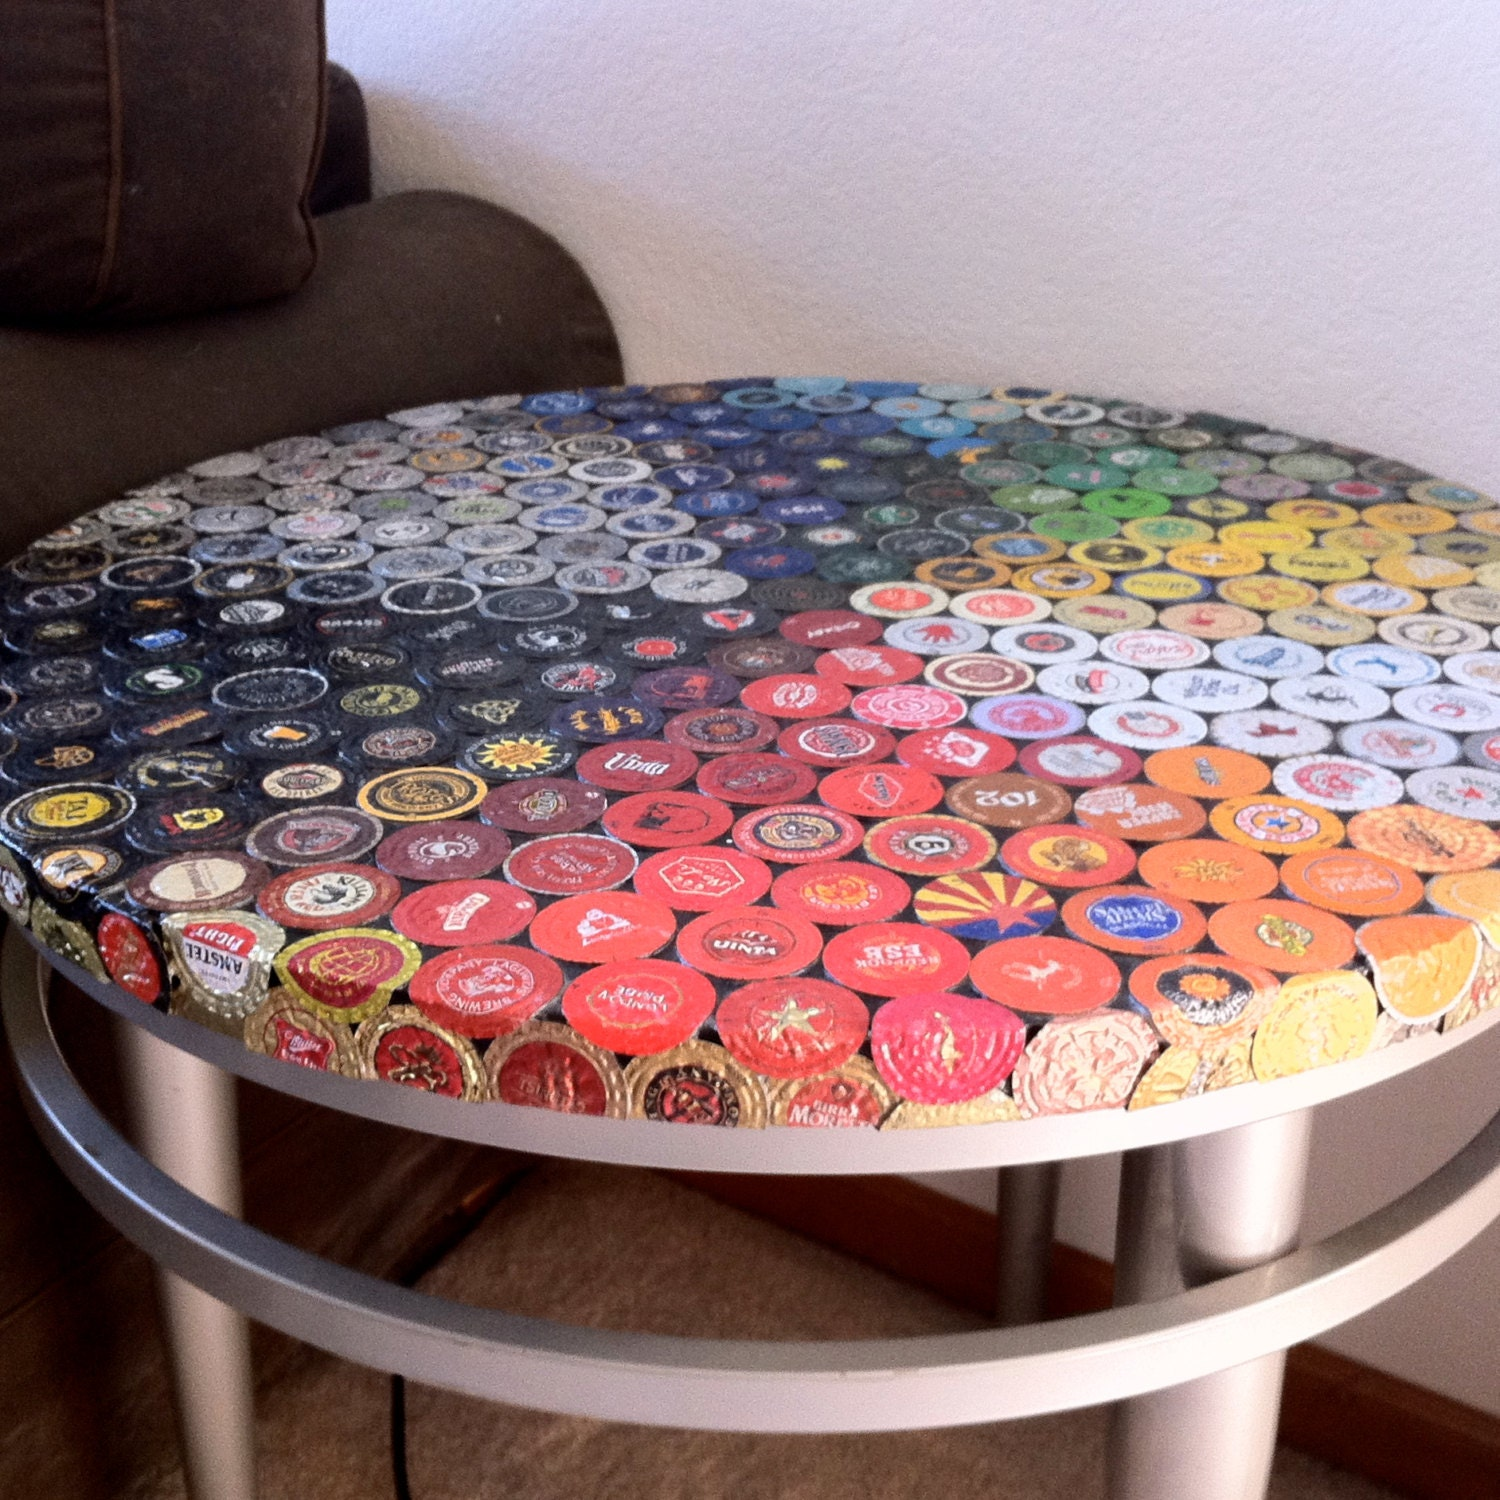 beer bottle cap mosaic table with silver base